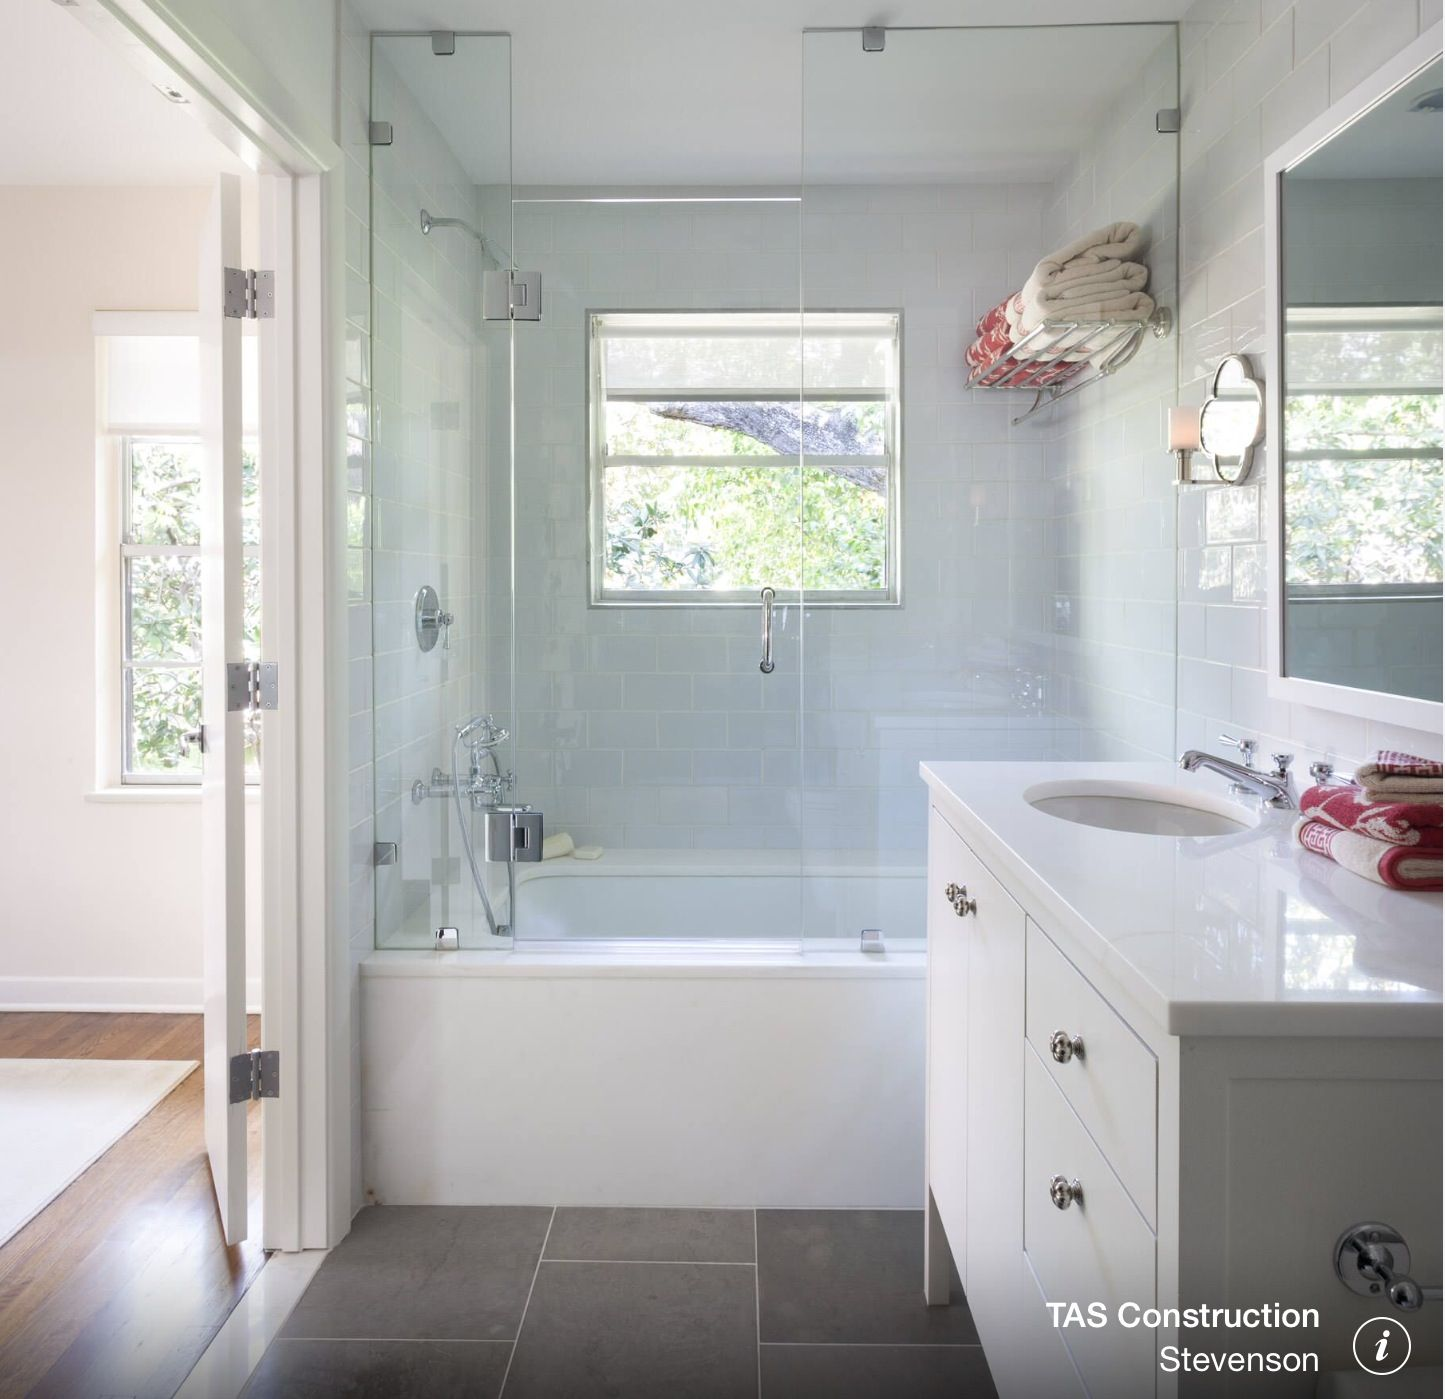 Shower over bath with glass door and window. Dark floor and white ...